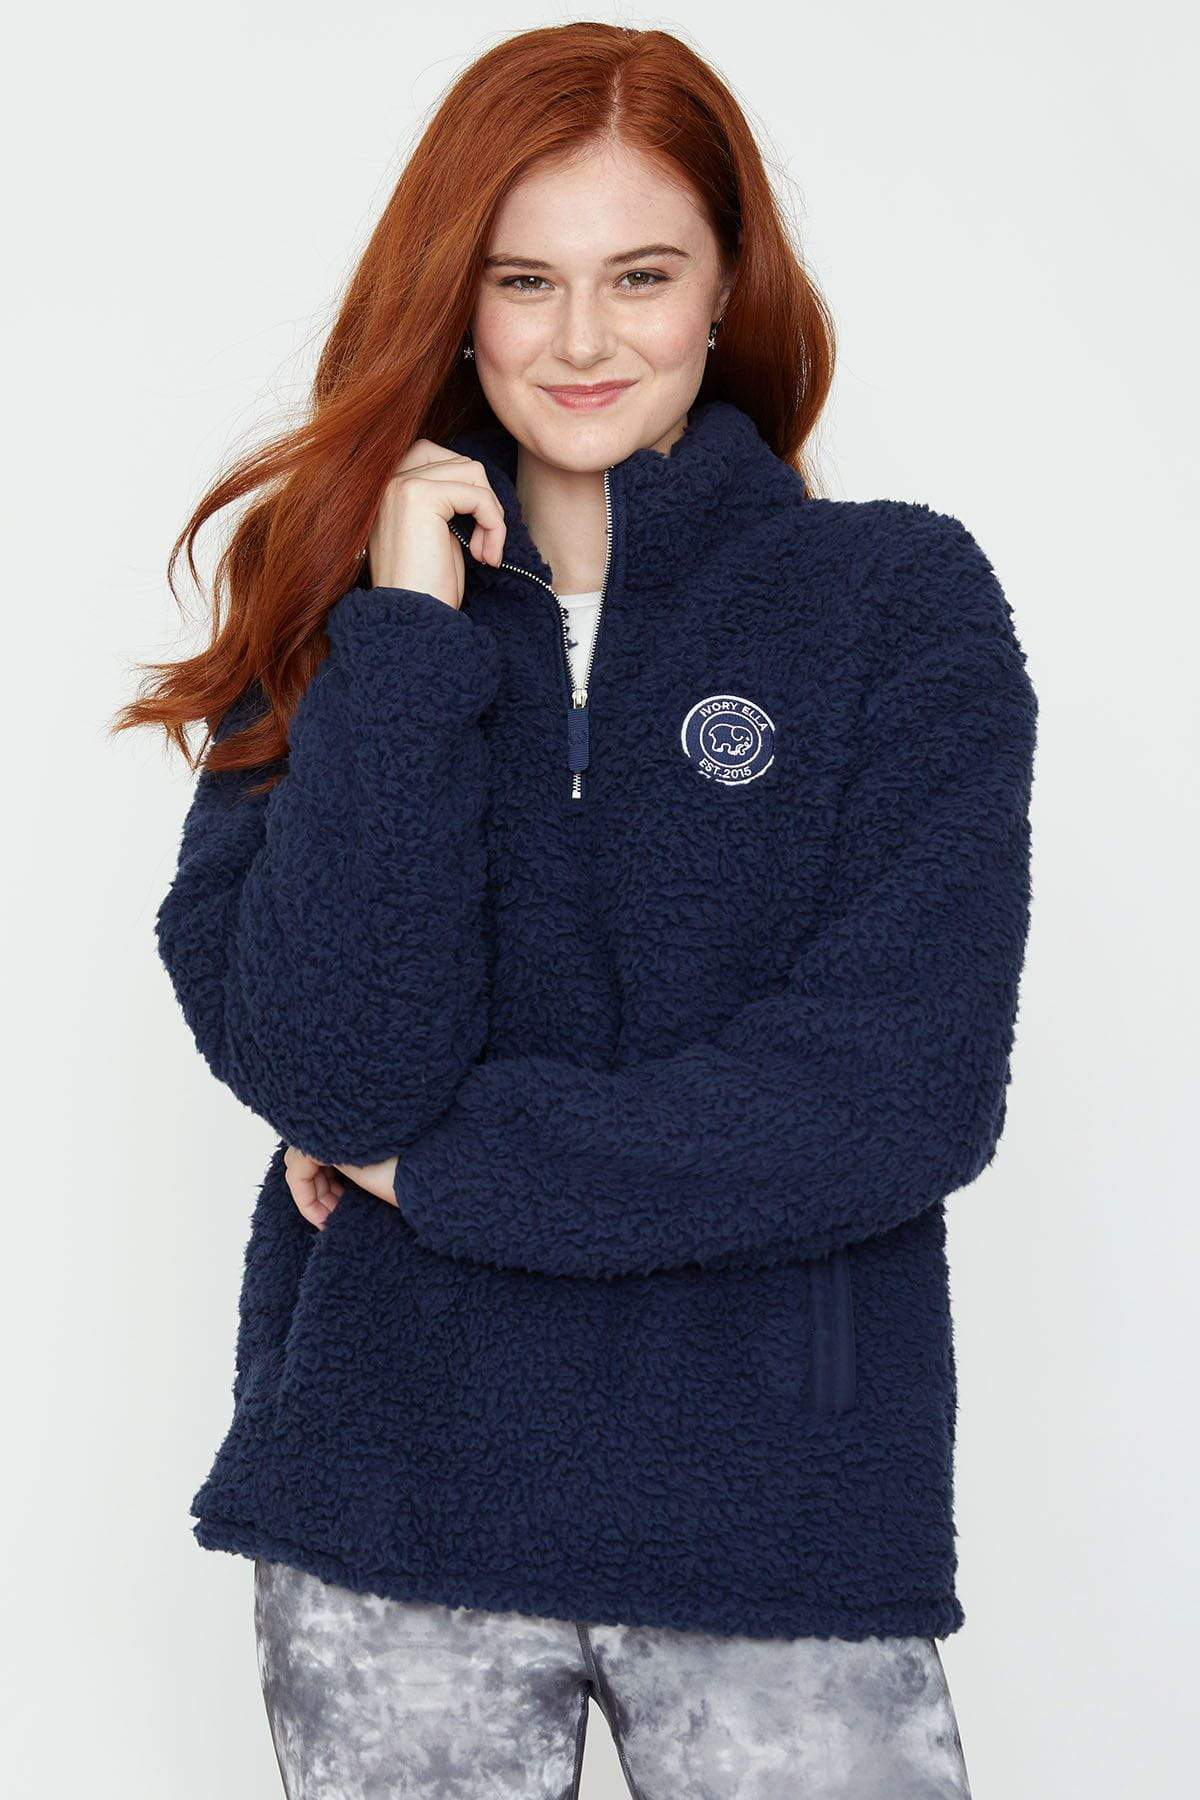 Ivory Ella Women's Outerwear Dark Navy Quarter Zip Sherpa